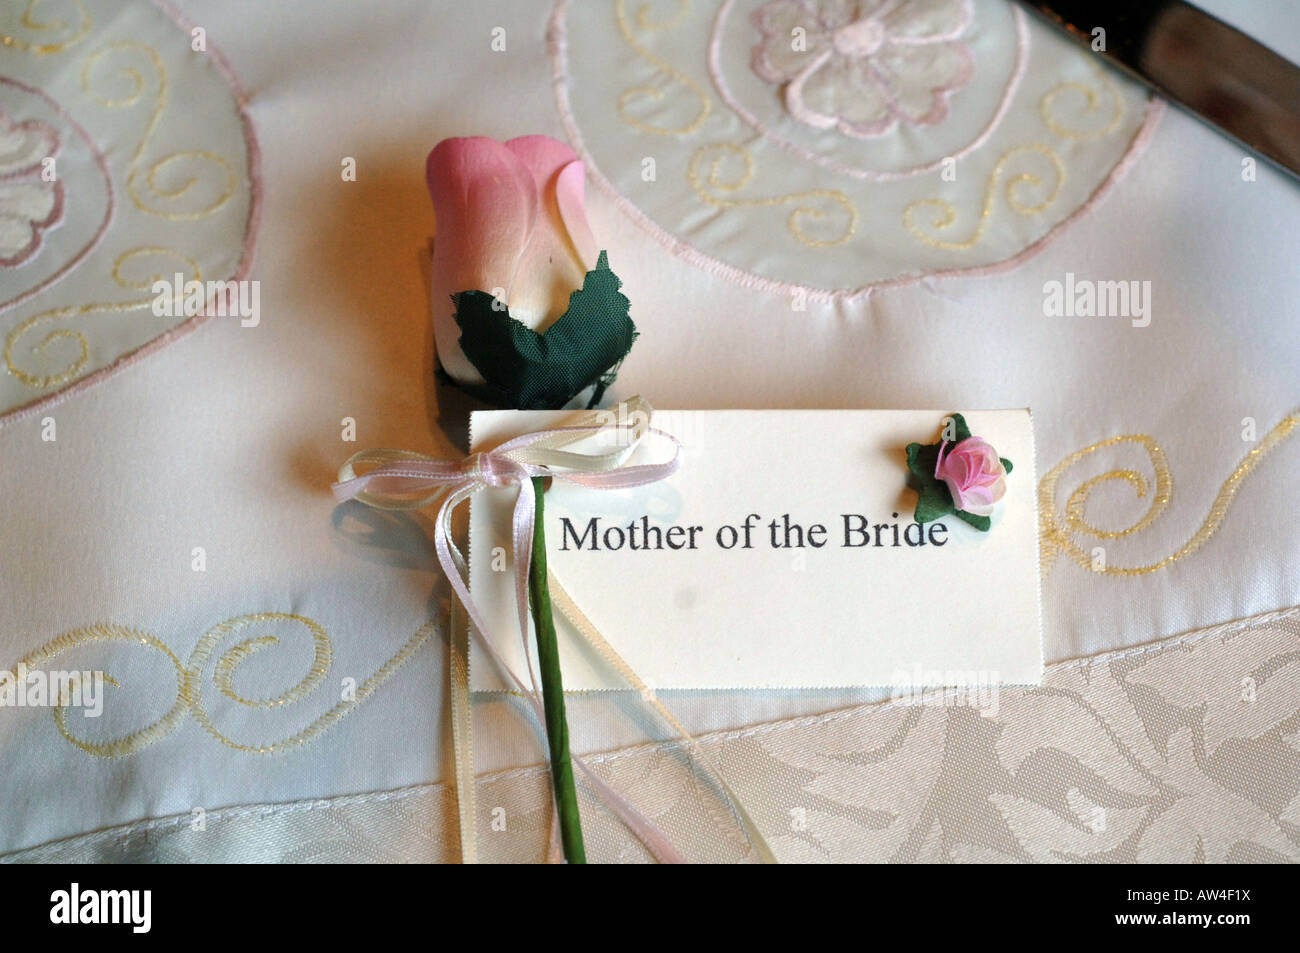 A table setting at a wedding UK - Stock Image